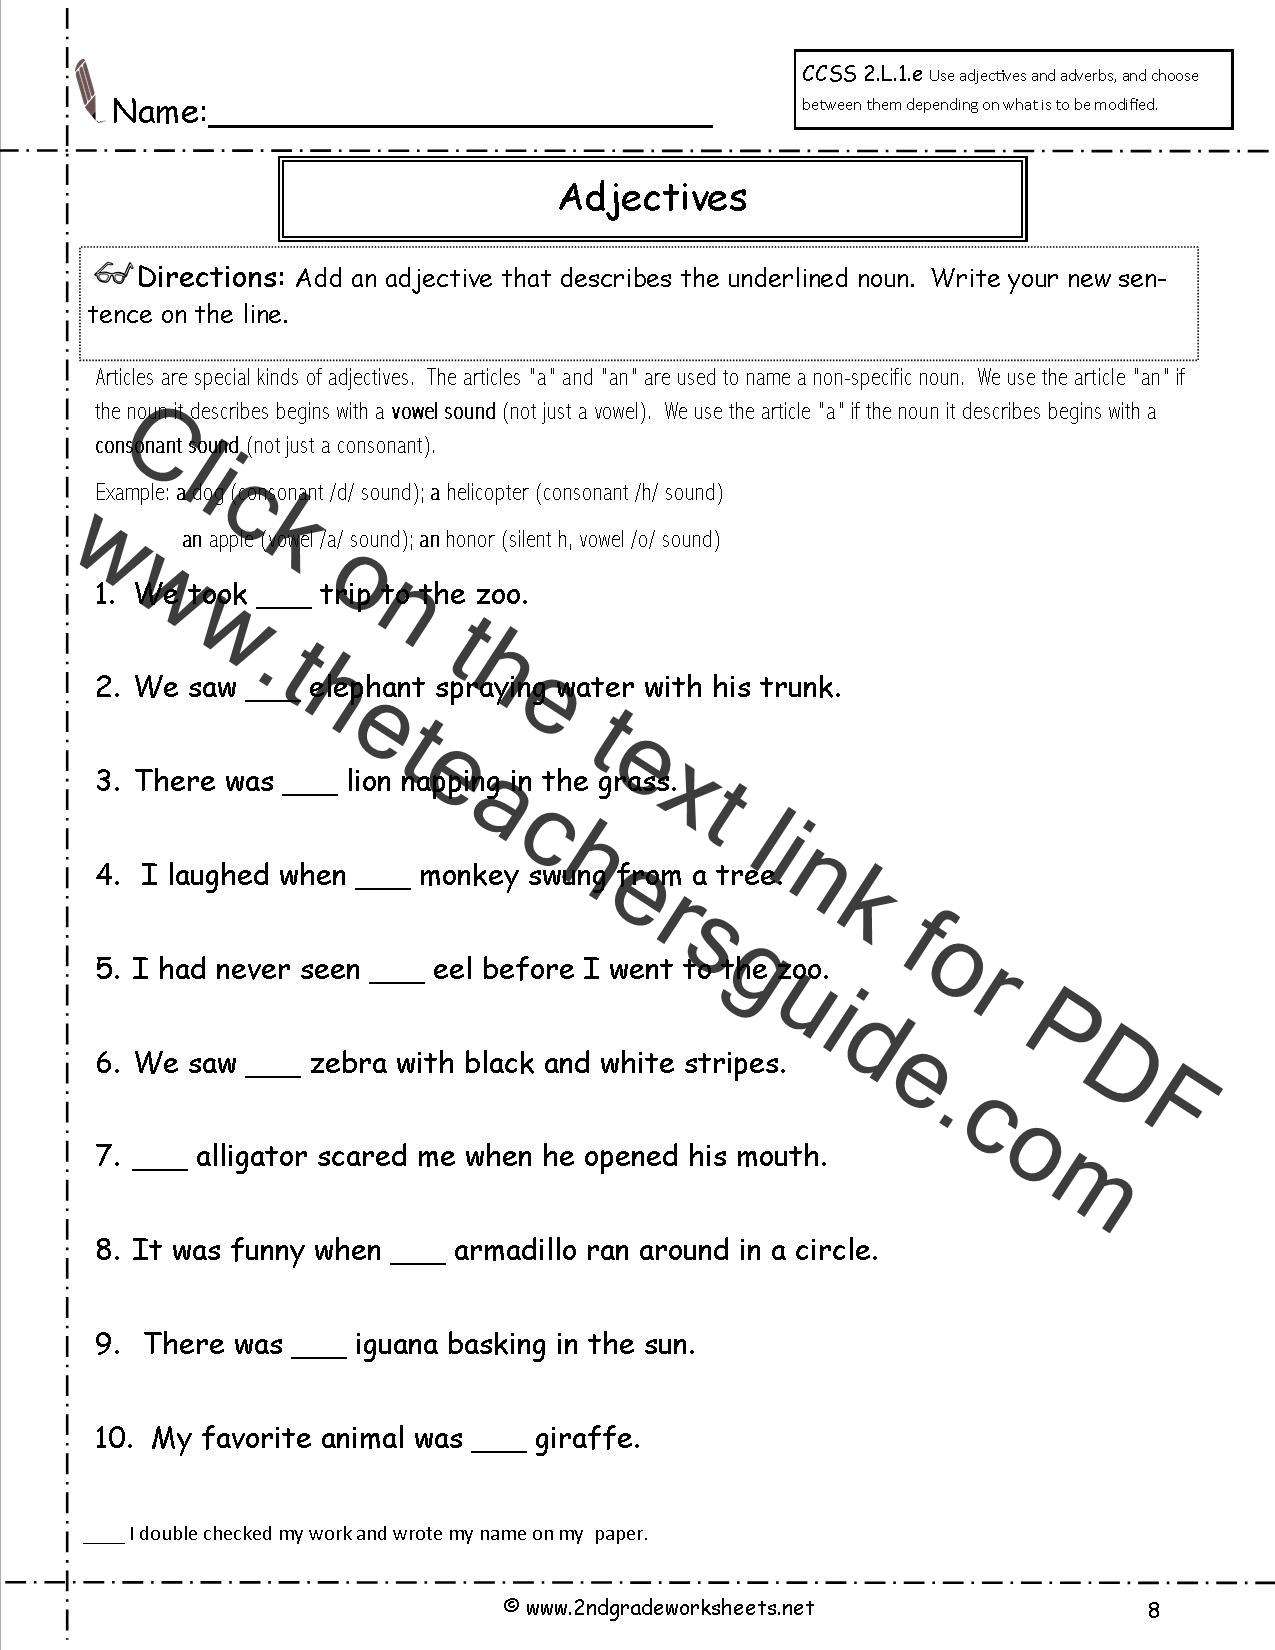 Free LanguageGrammar Worksheets and Printouts – Basic Grammar Worksheets